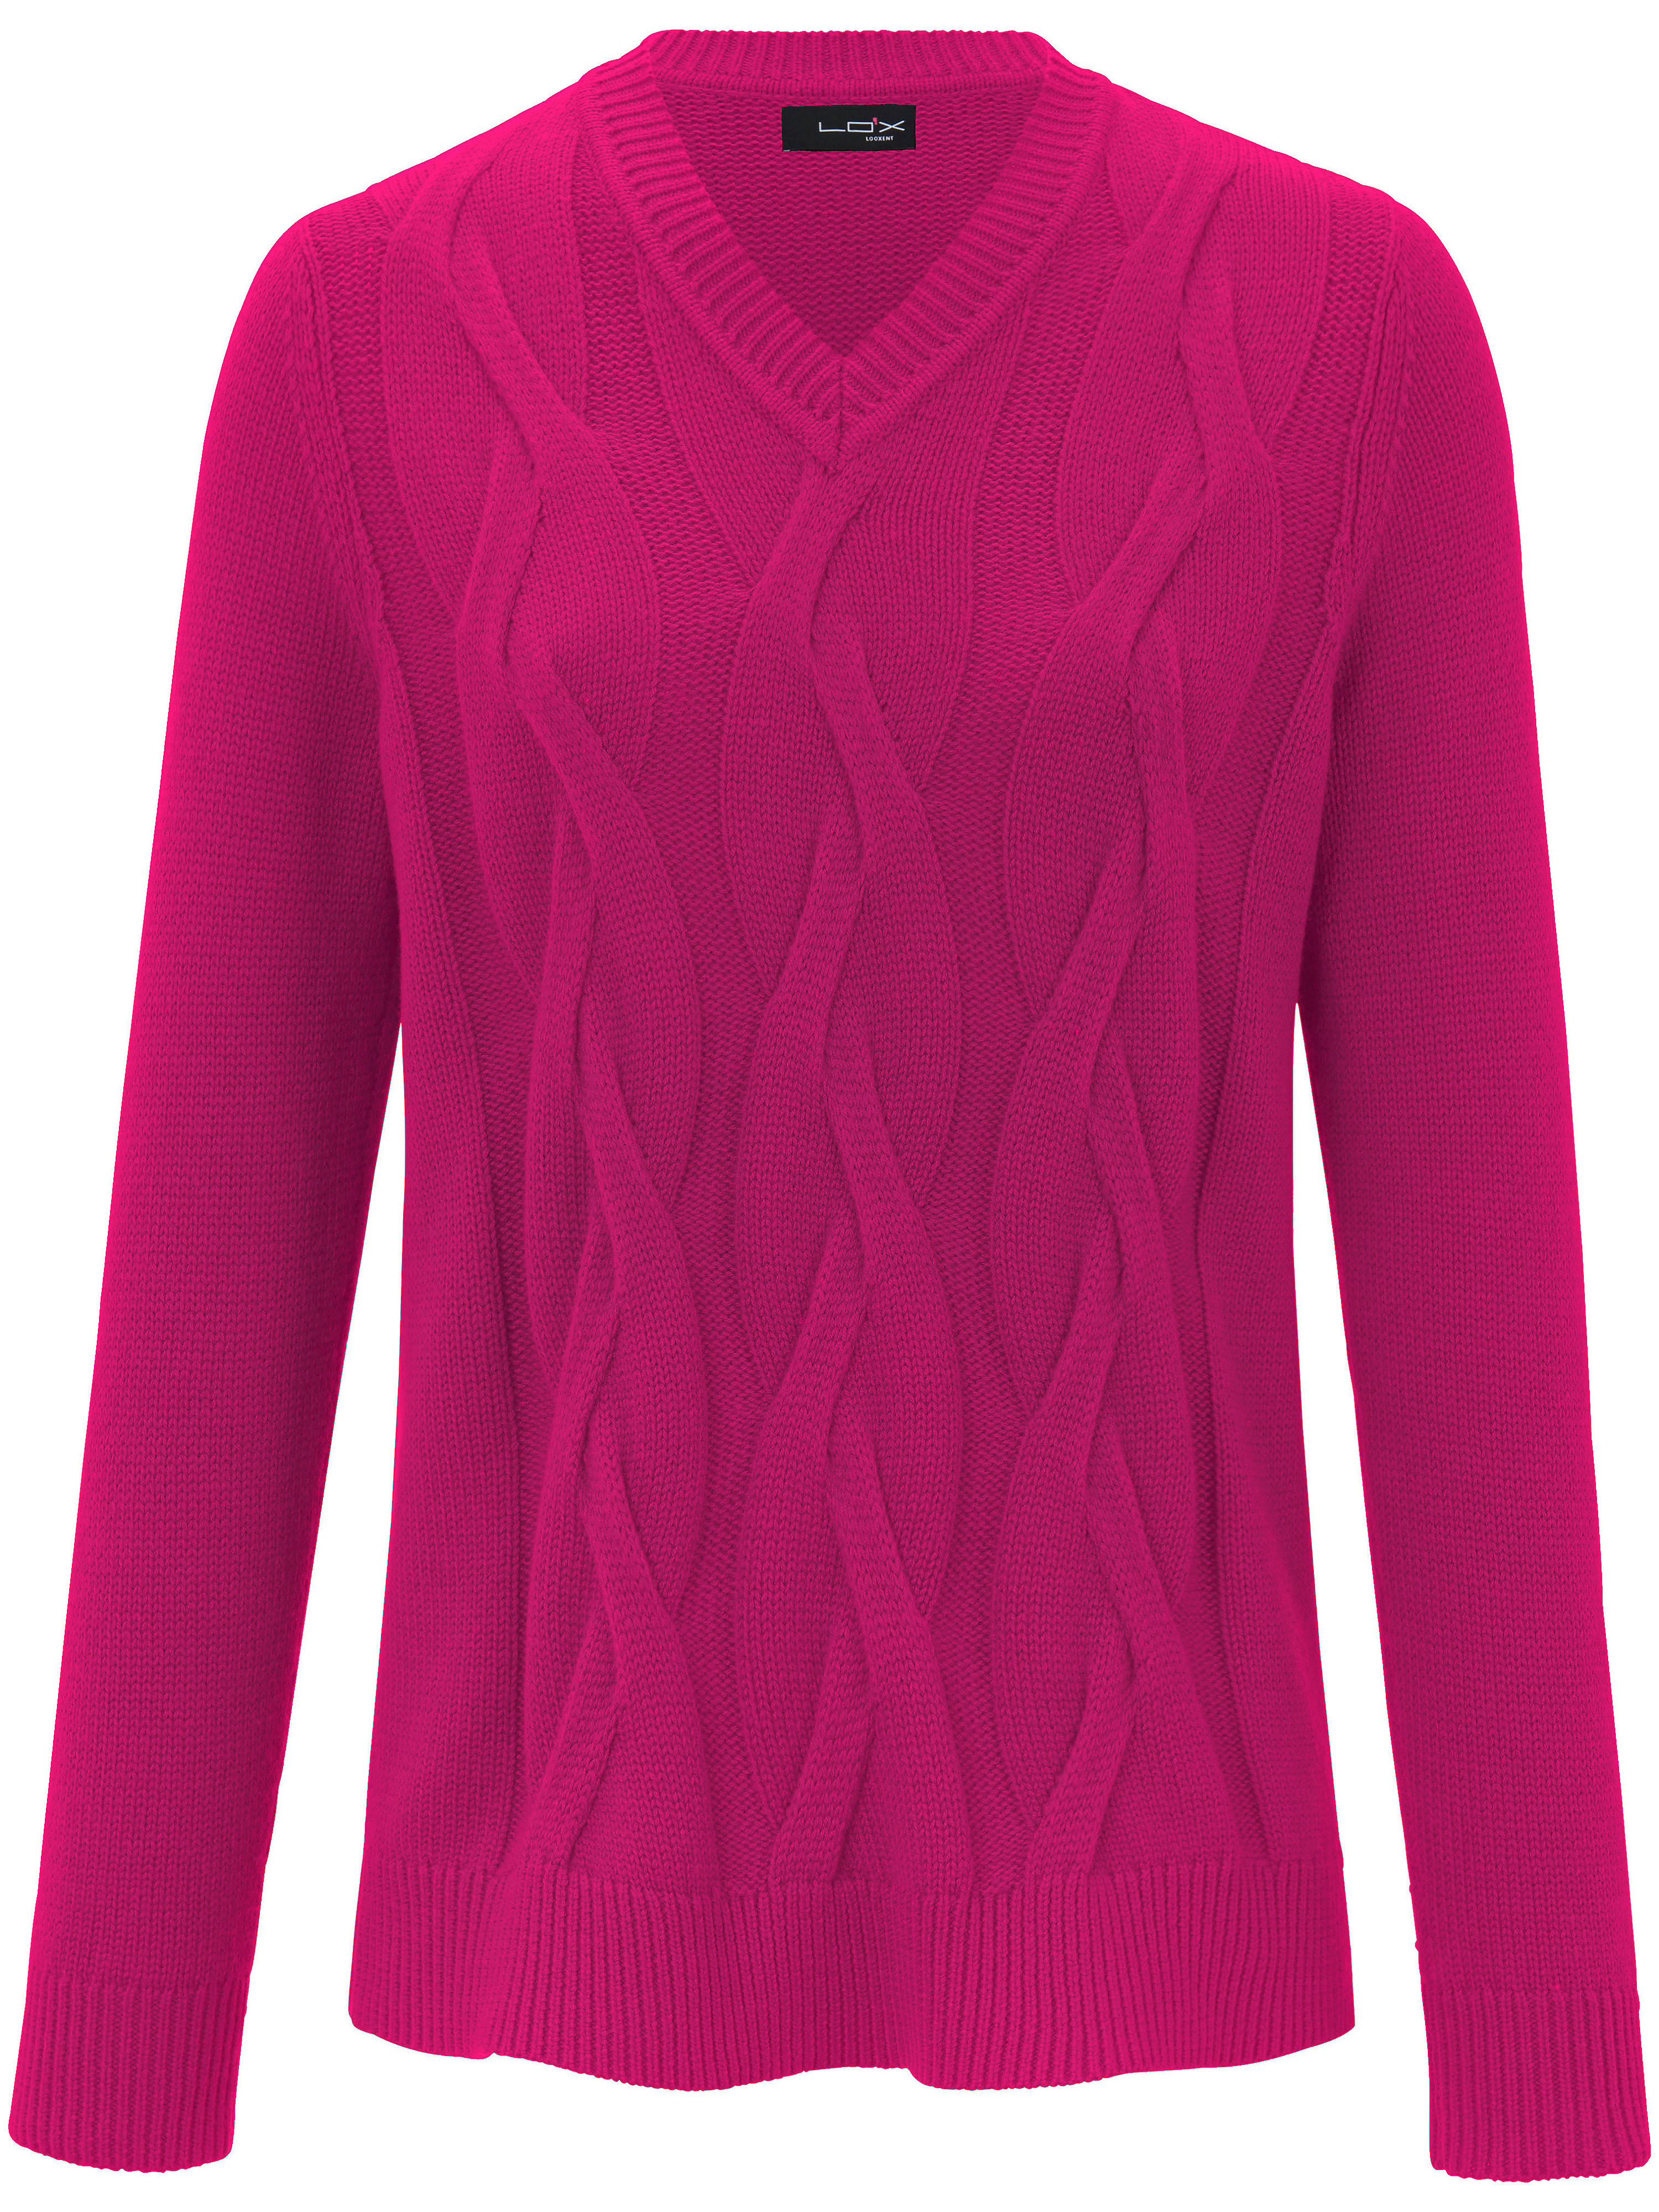 Le pull  Looxent fuchsia taille 48